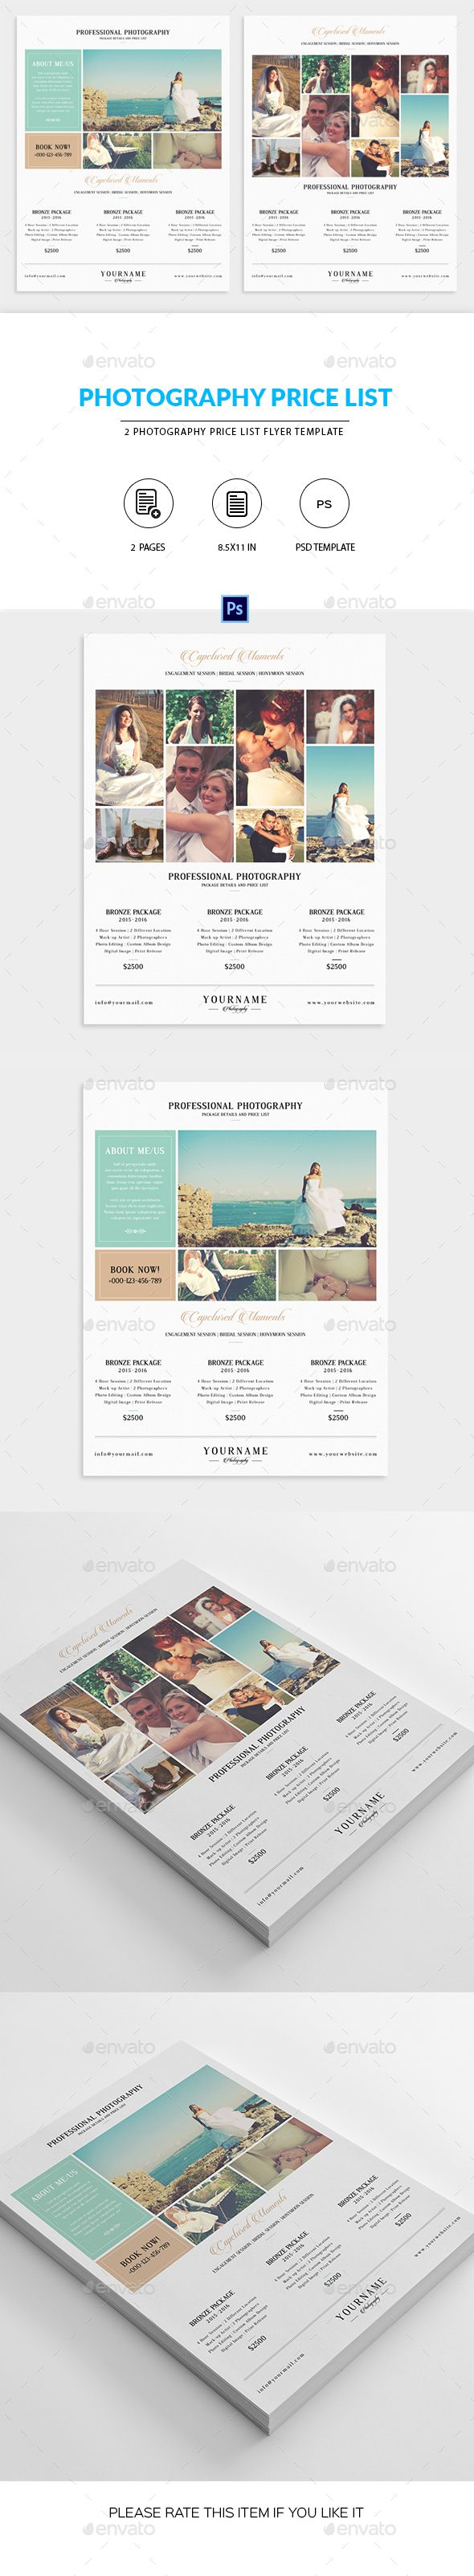 Minimal Photography Price List Marketing Flyer  #photoshop elements #price list…